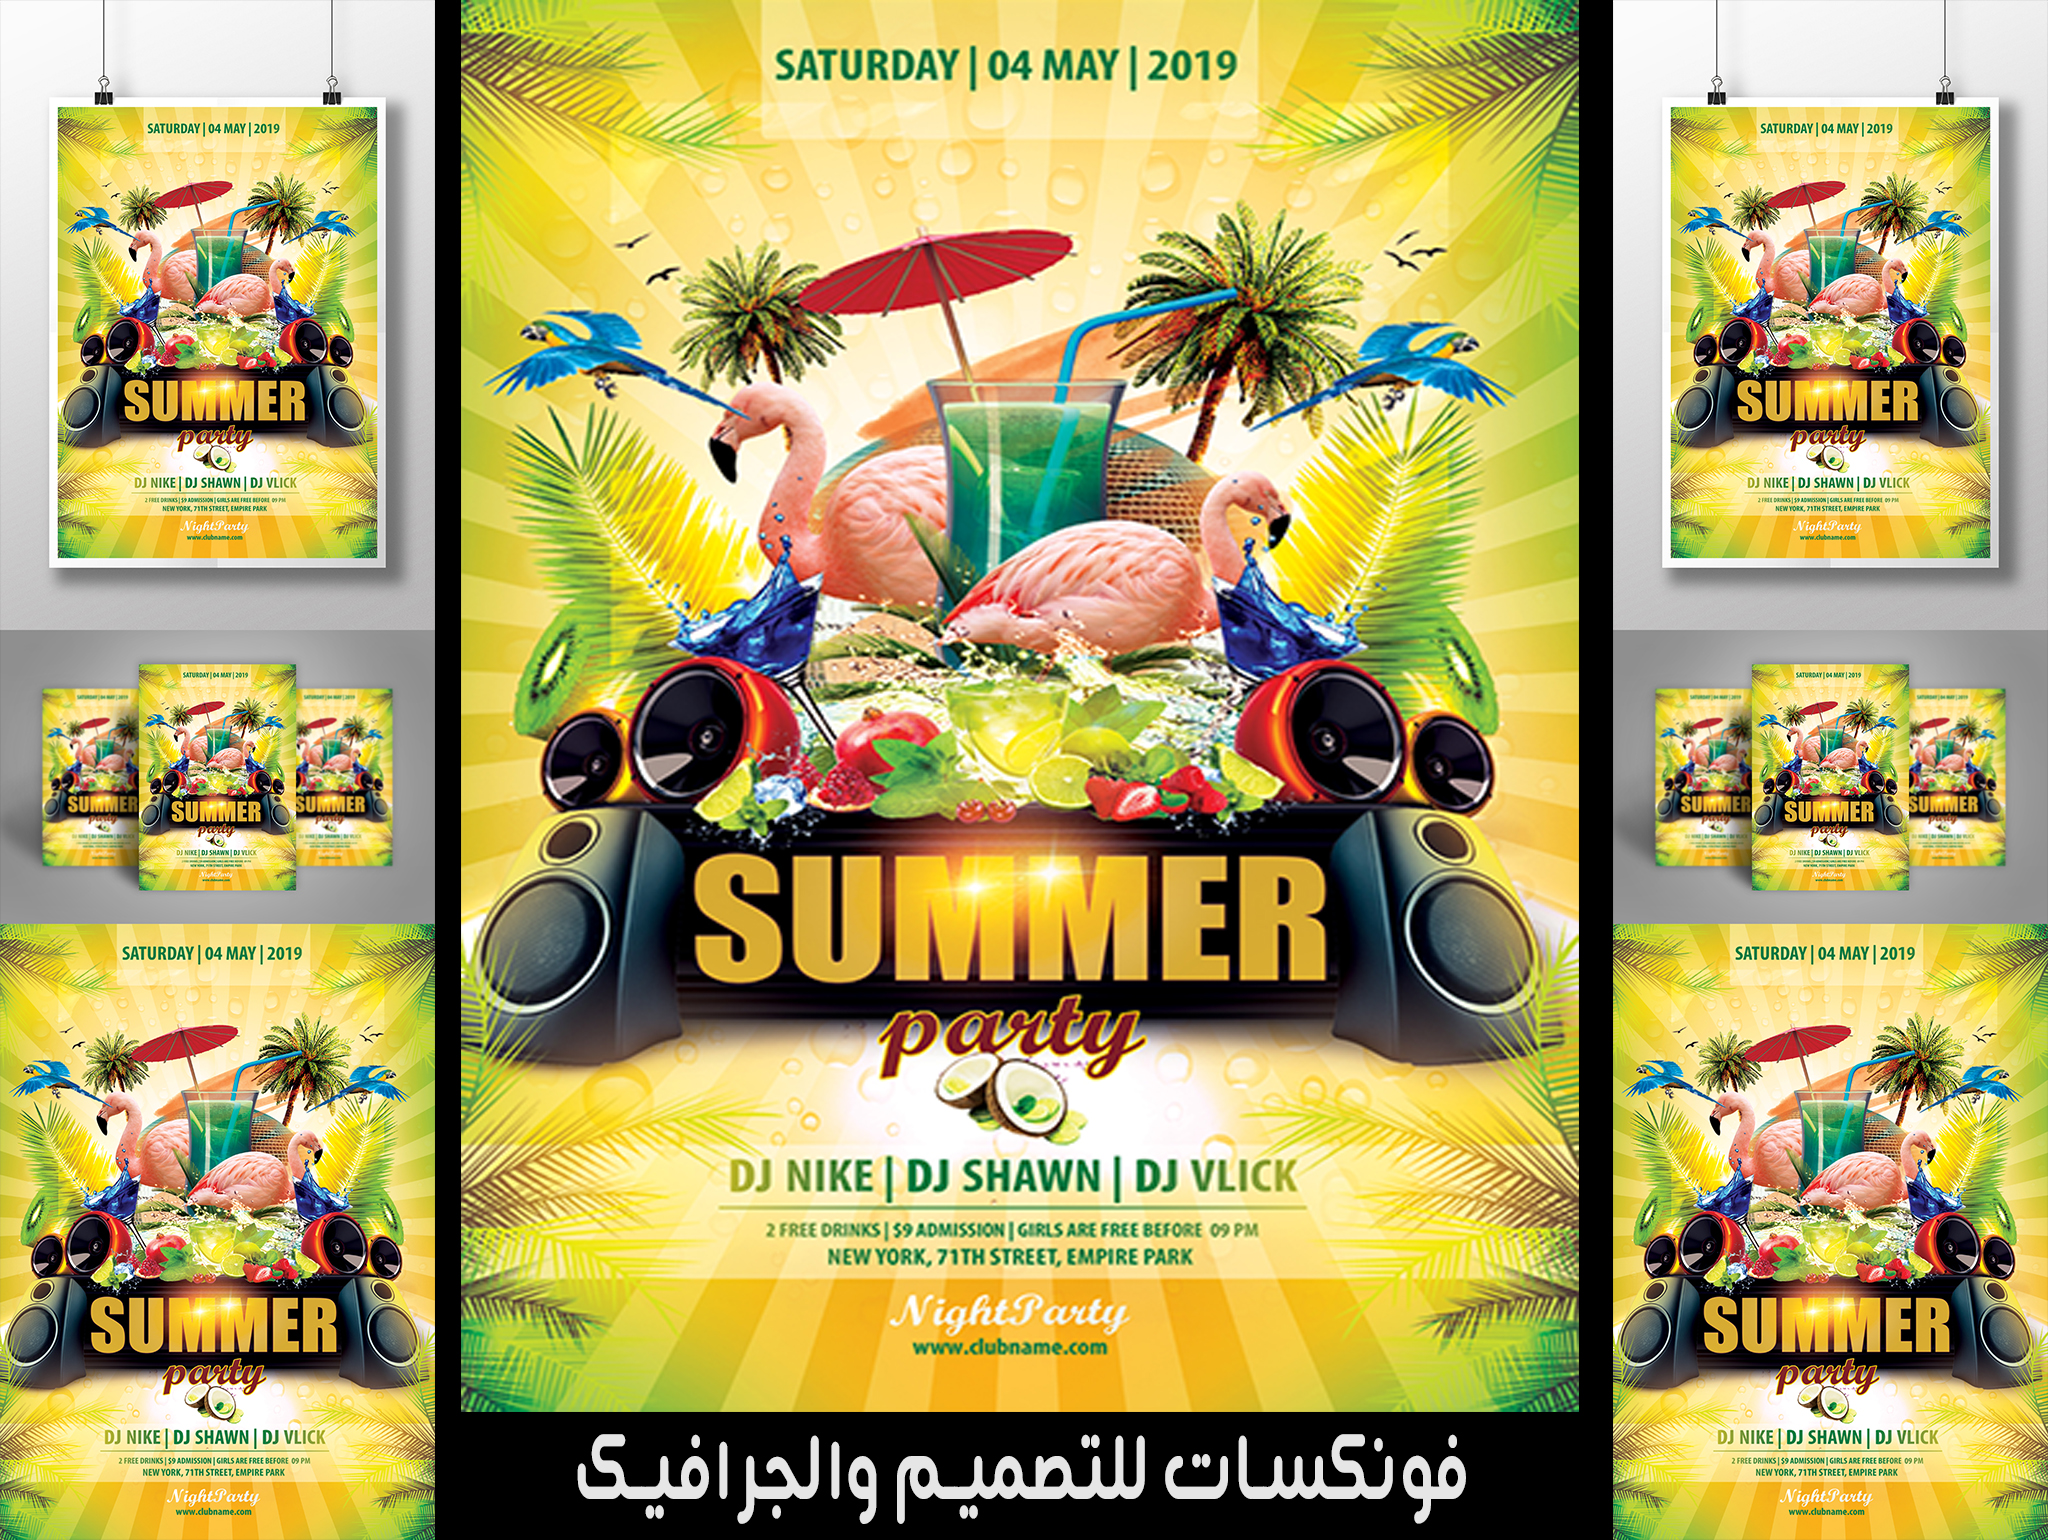 Entertainment, vacation and excursion poster psd file